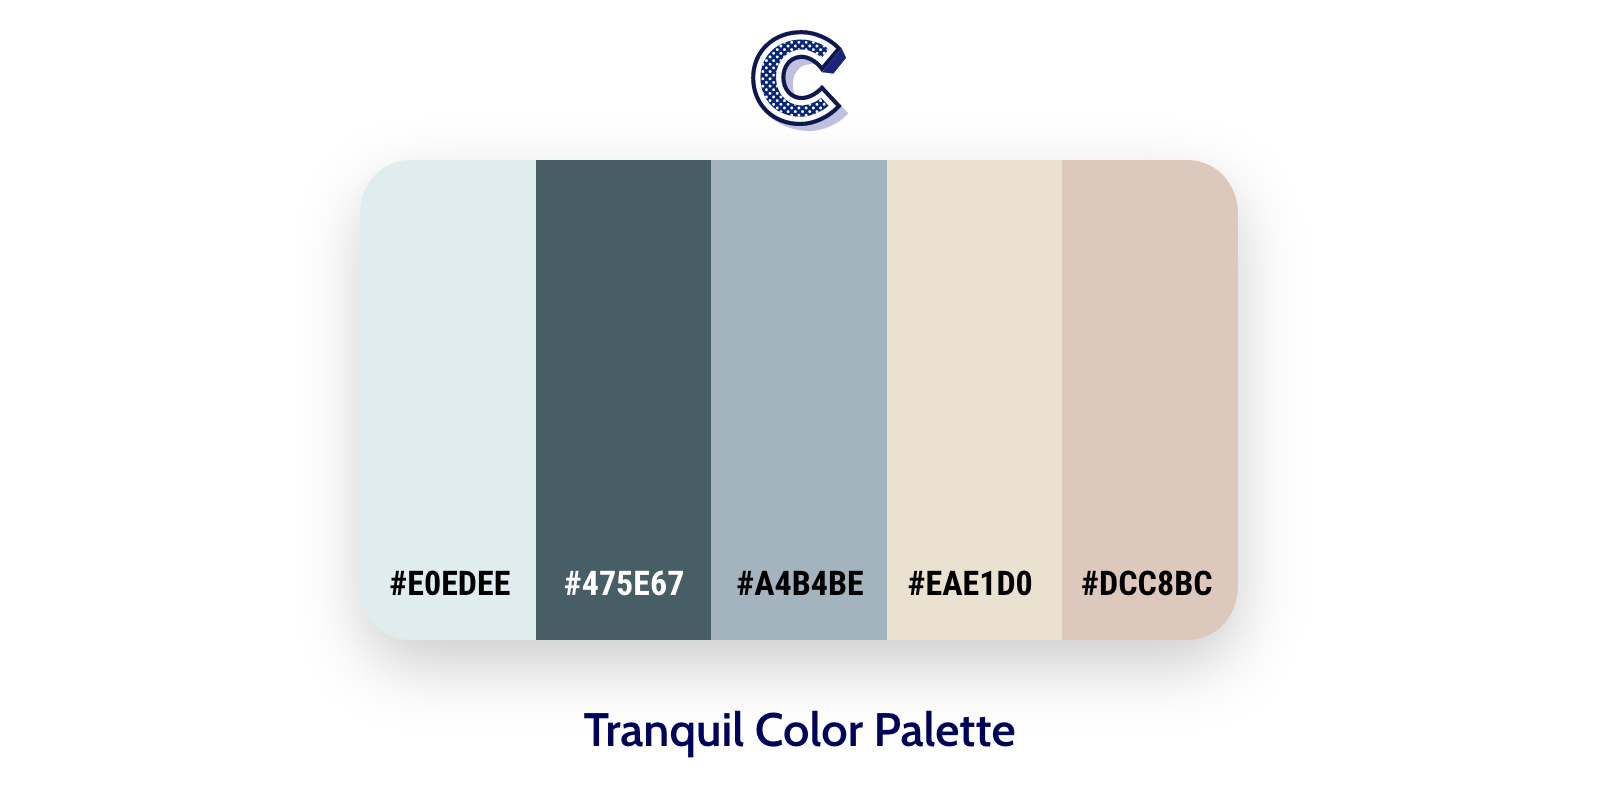 the featured image of Tranquilord color palette